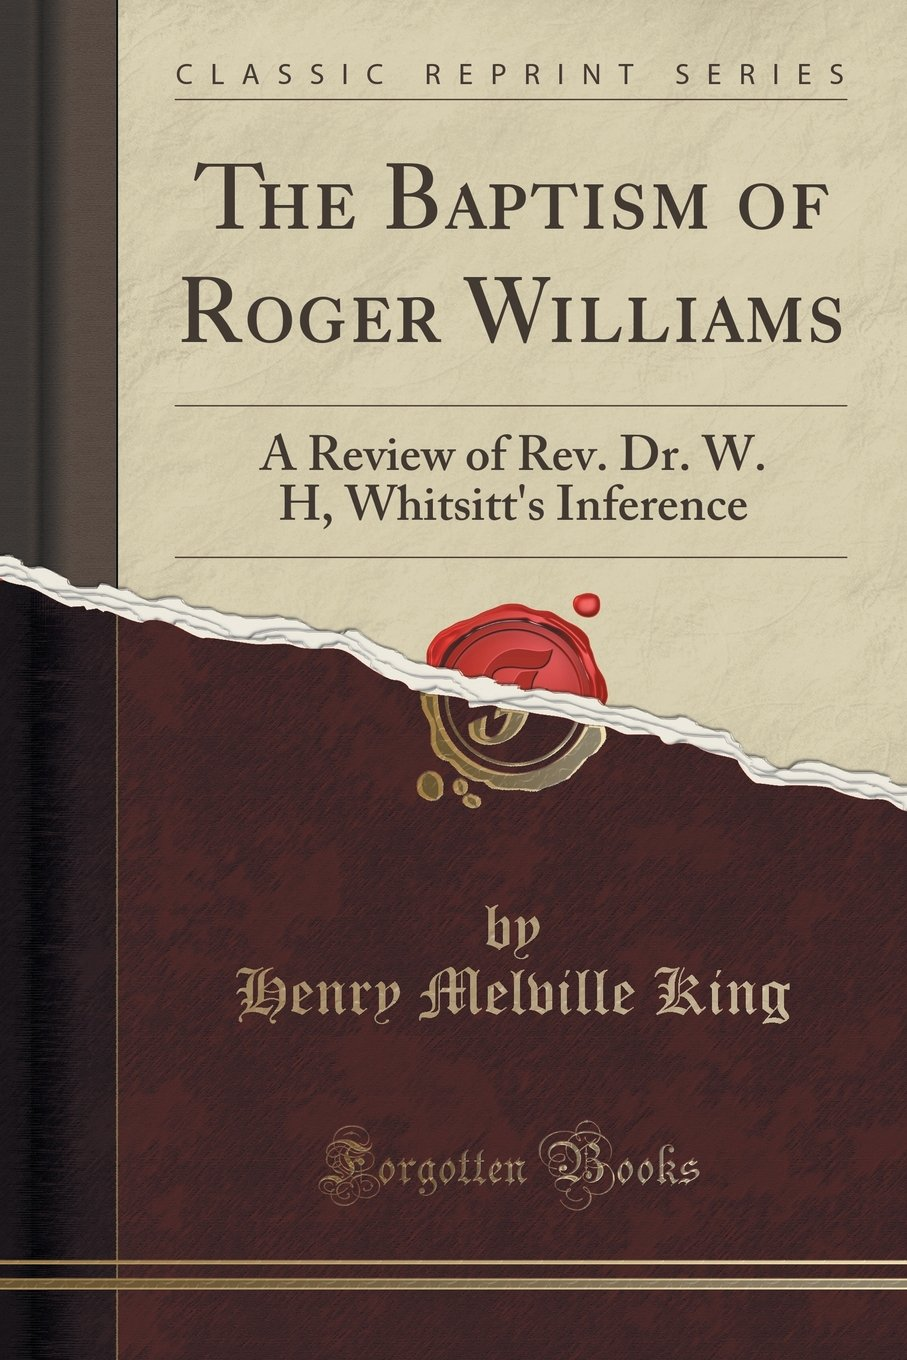 Download The Baptism of Roger Williams: A Review of Rev. Dr. W. H, Whitsitt's Inference (Classic Reprint) PDF